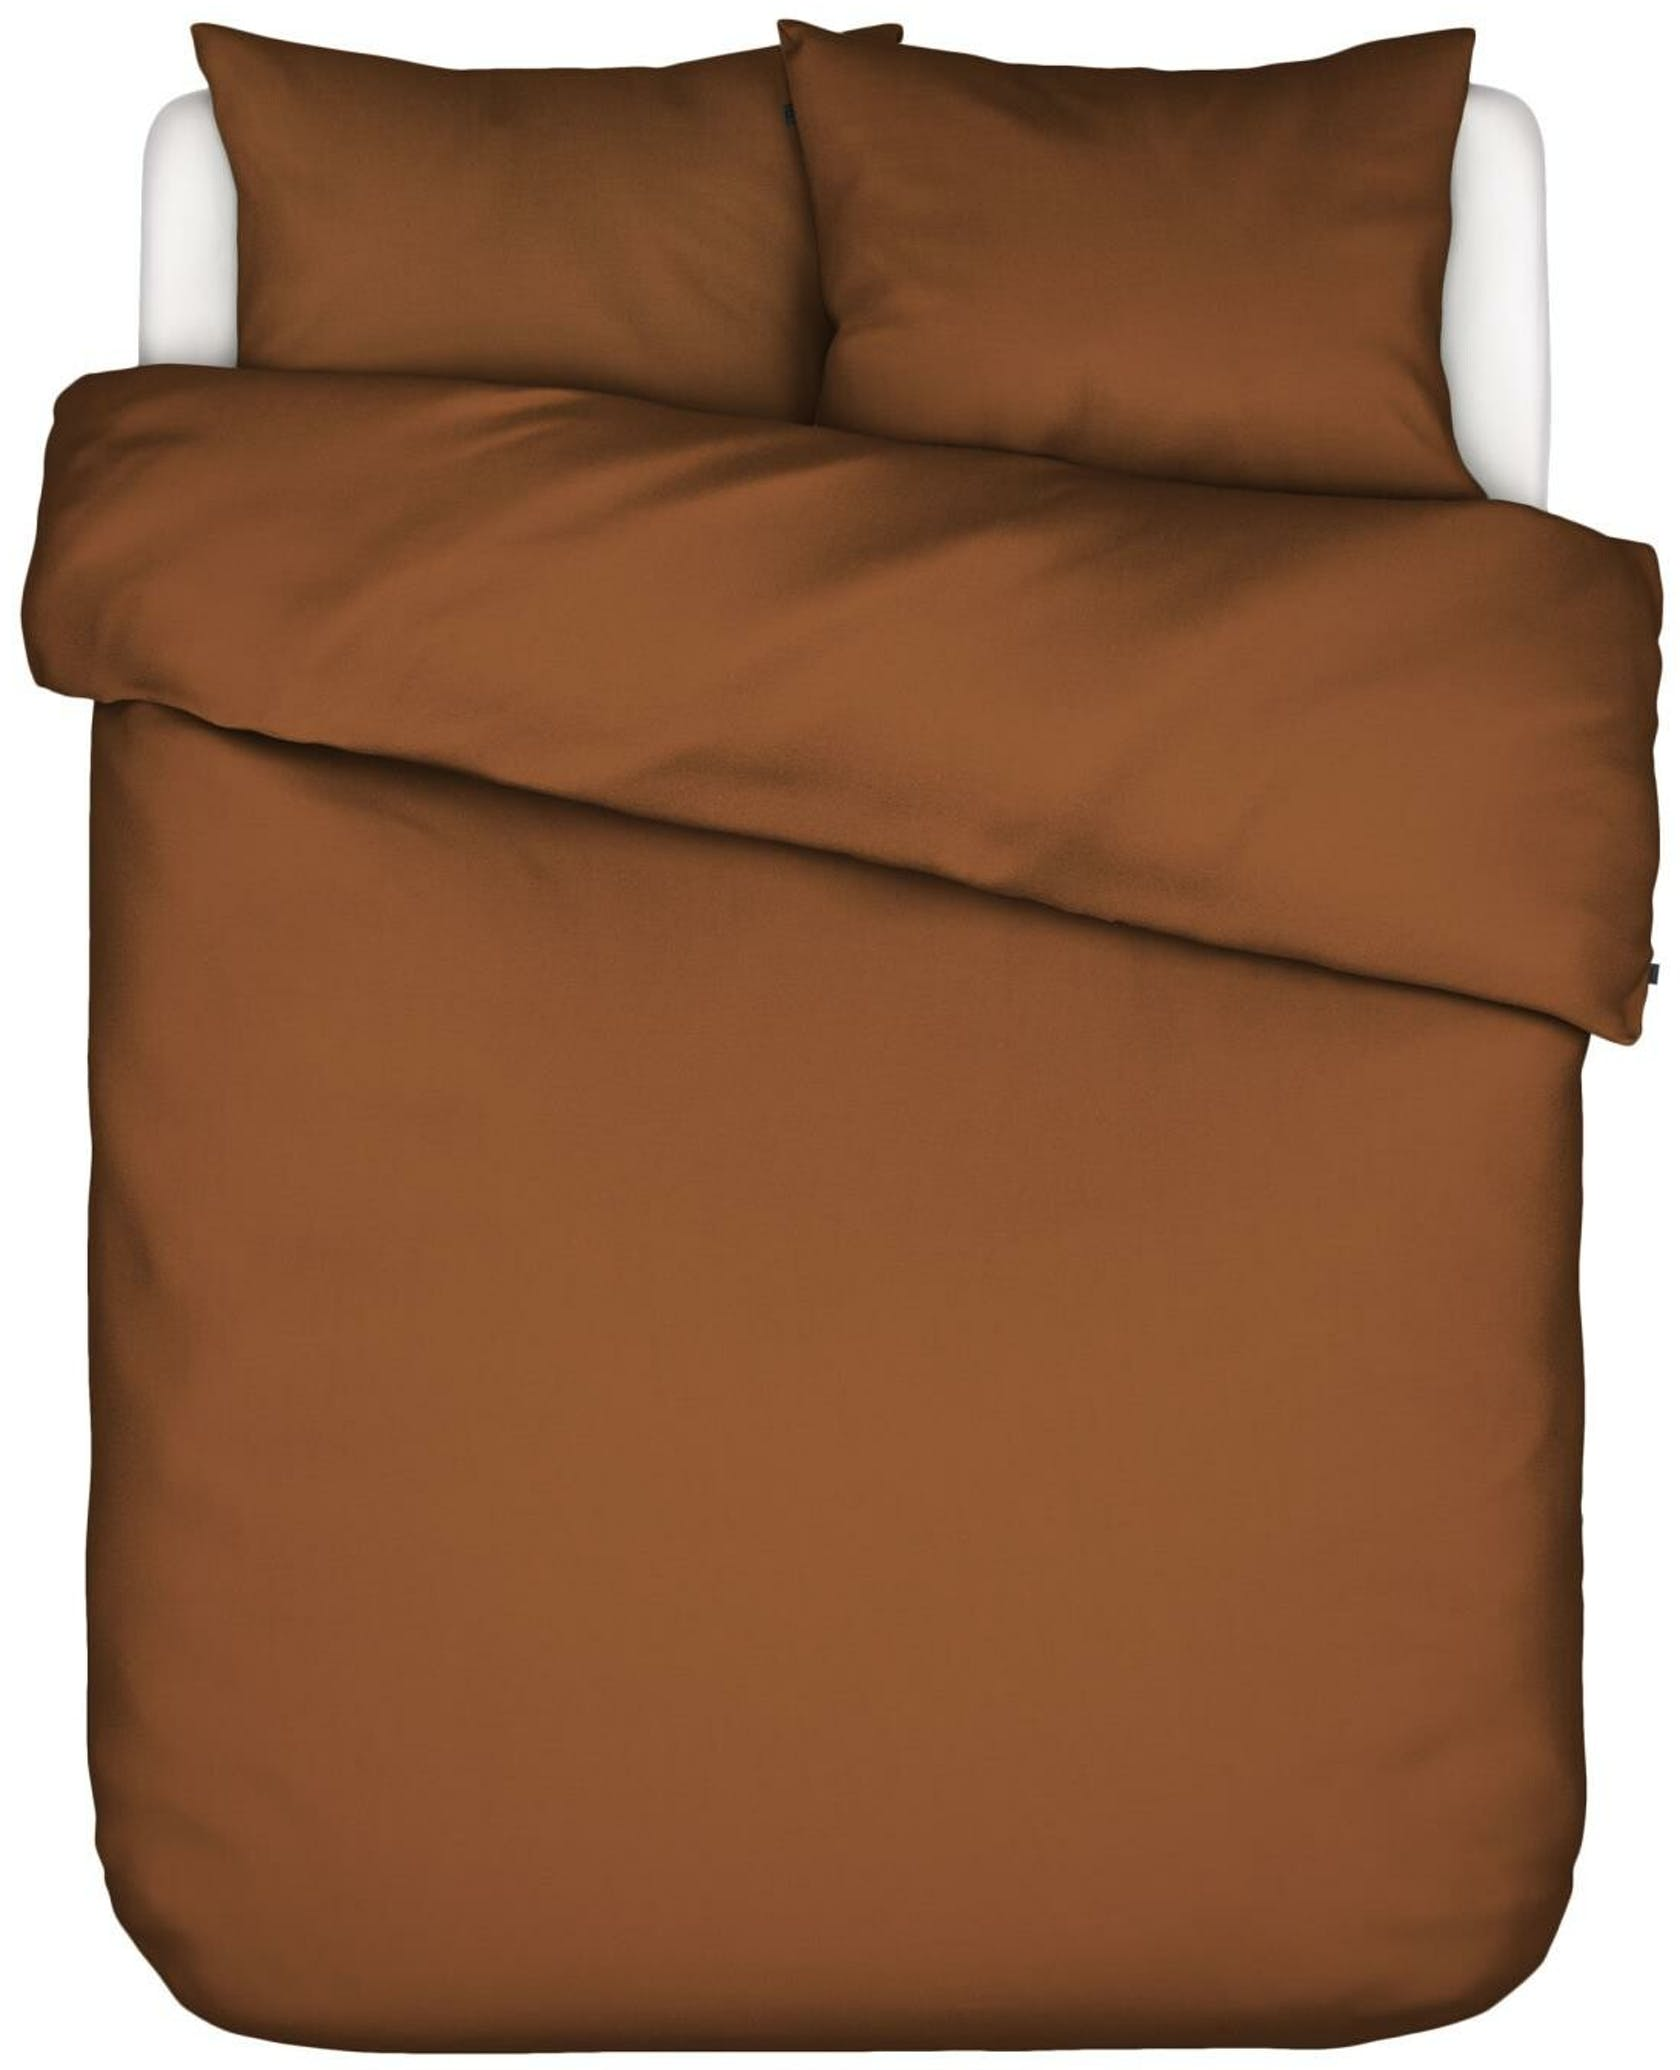 ESSENZA Minte Leather Brown Duvet cover 200 x 220